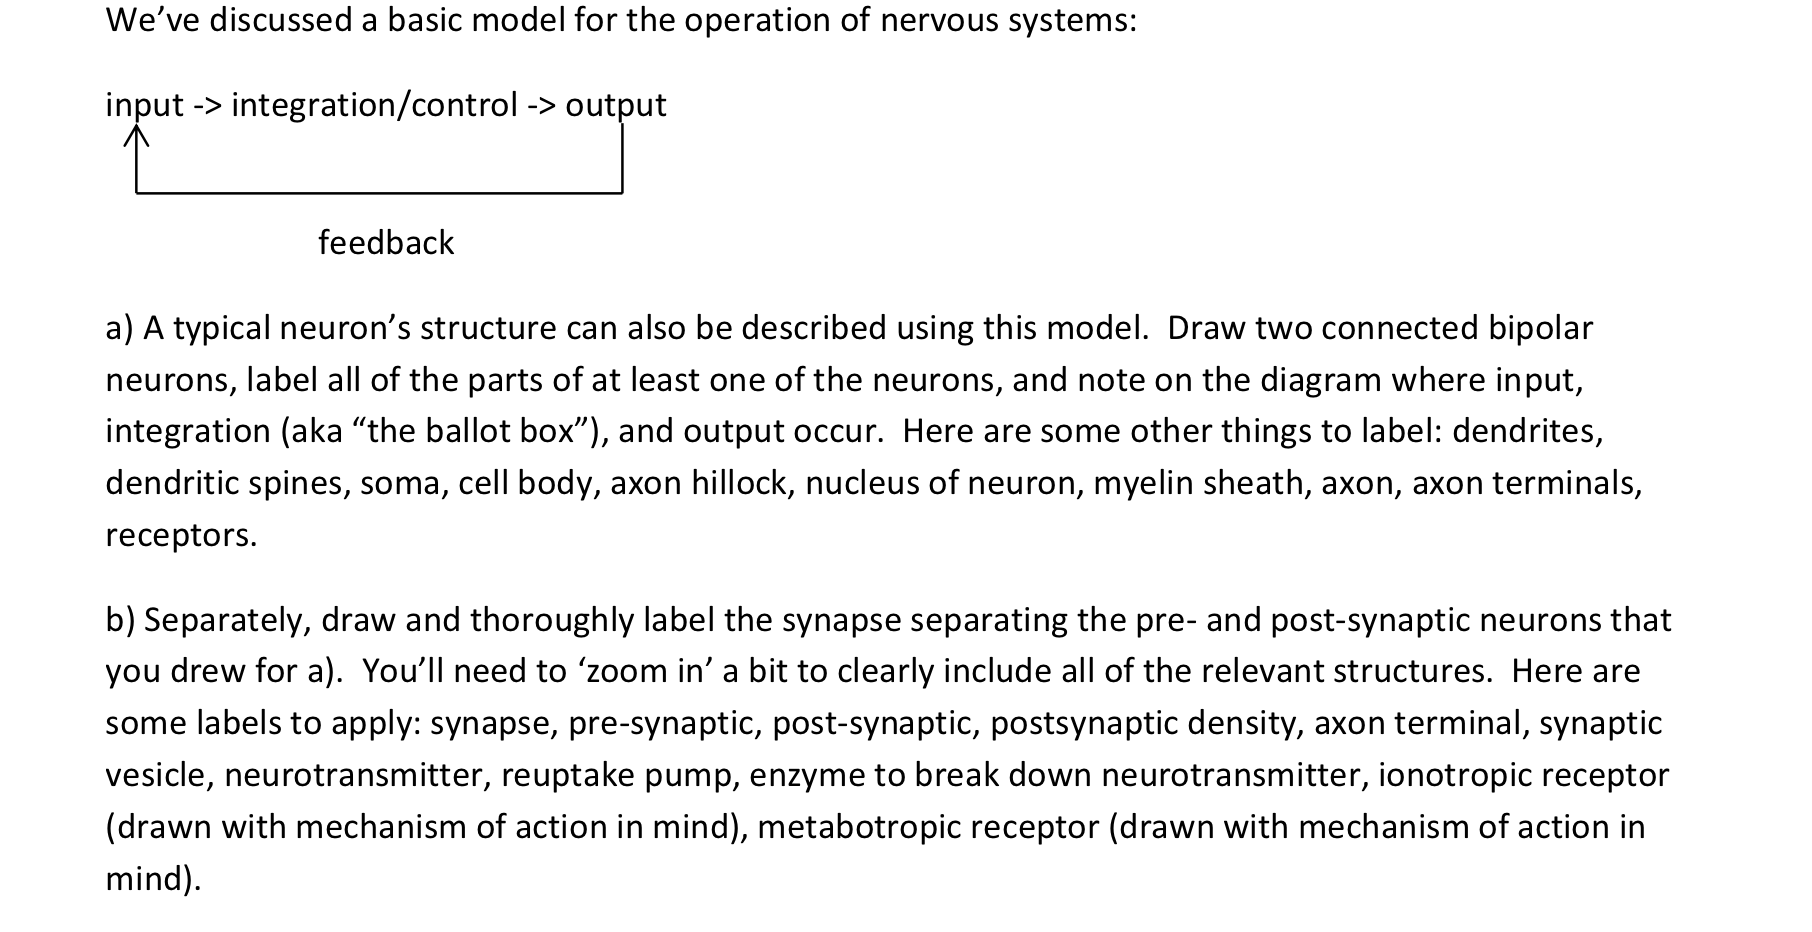 biology archive com we ve discussed a basic model for the operation of nervous systems a typical neuron s structure can also be described using this model draw two connected